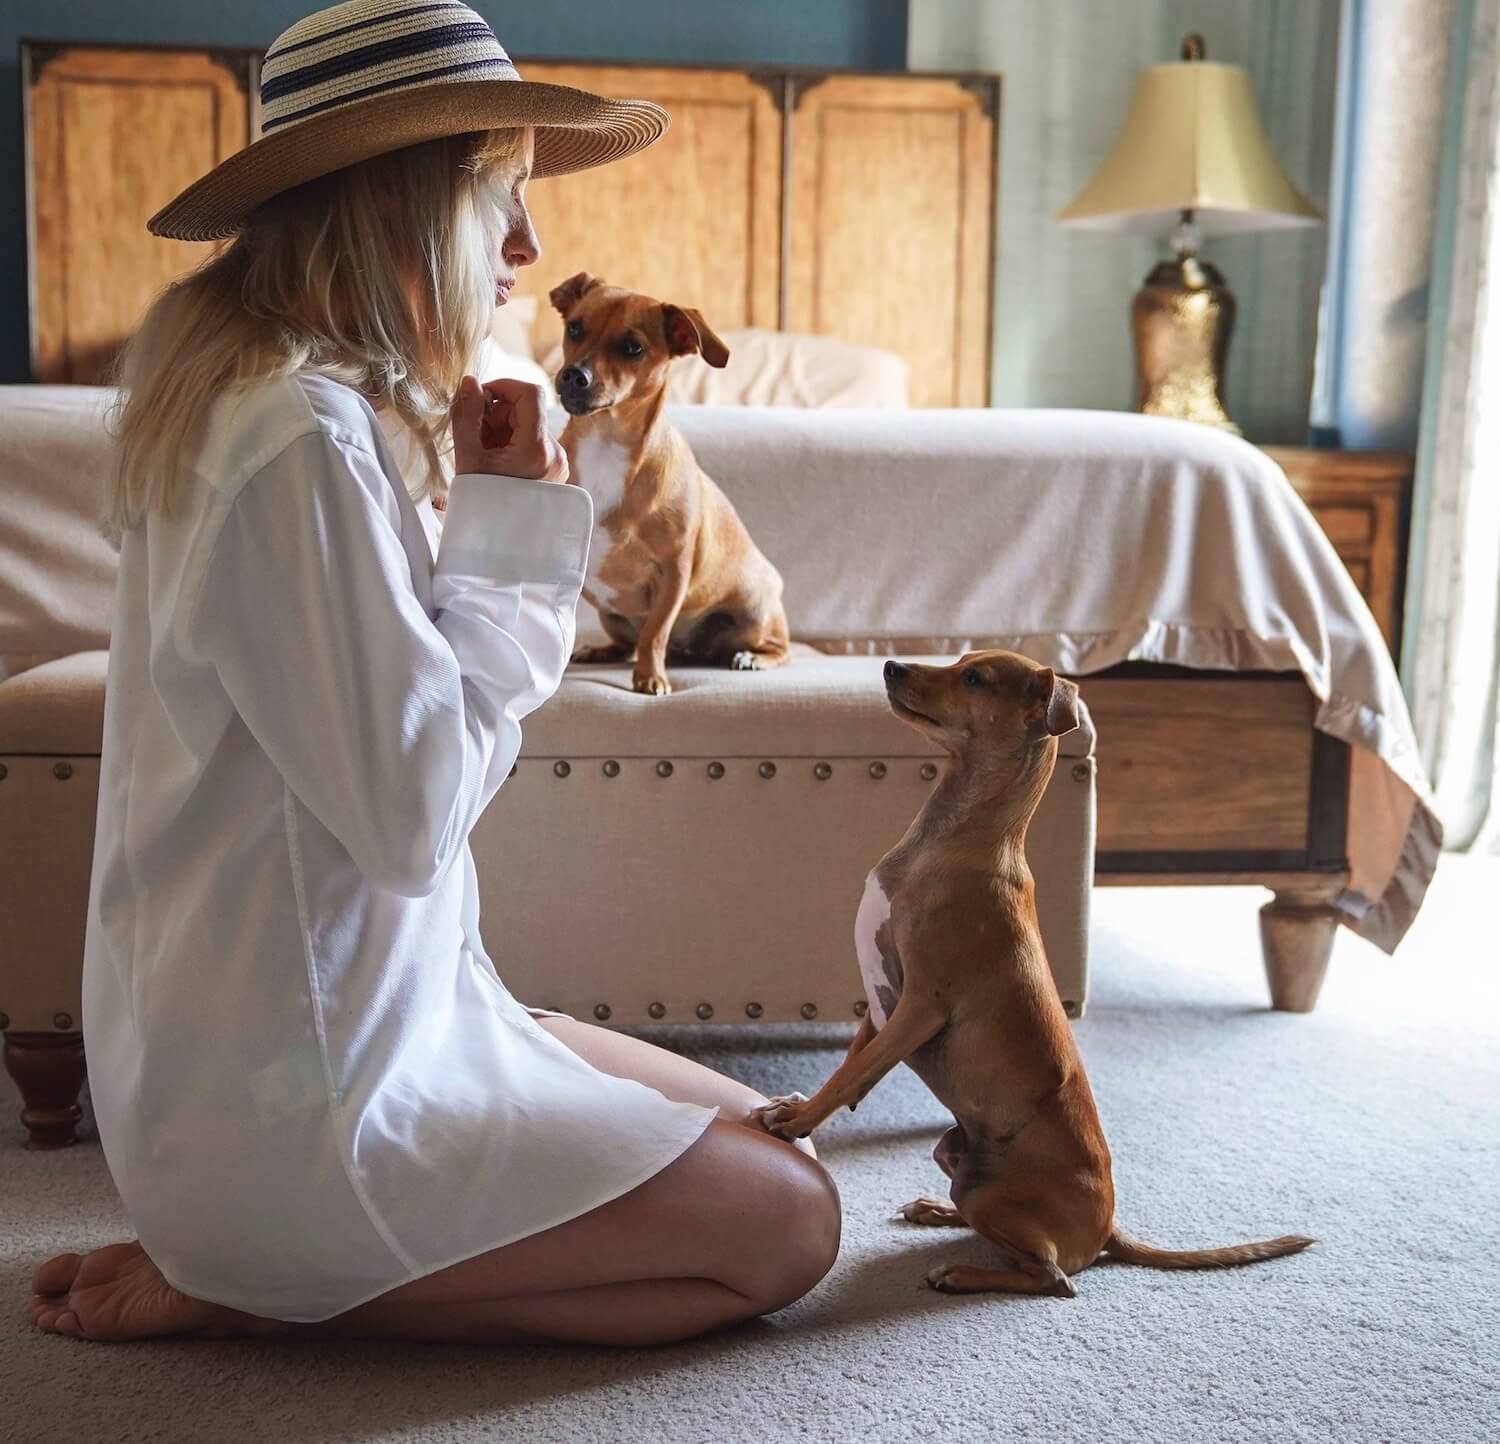 6 travel trends you and your dog should know about in 2019